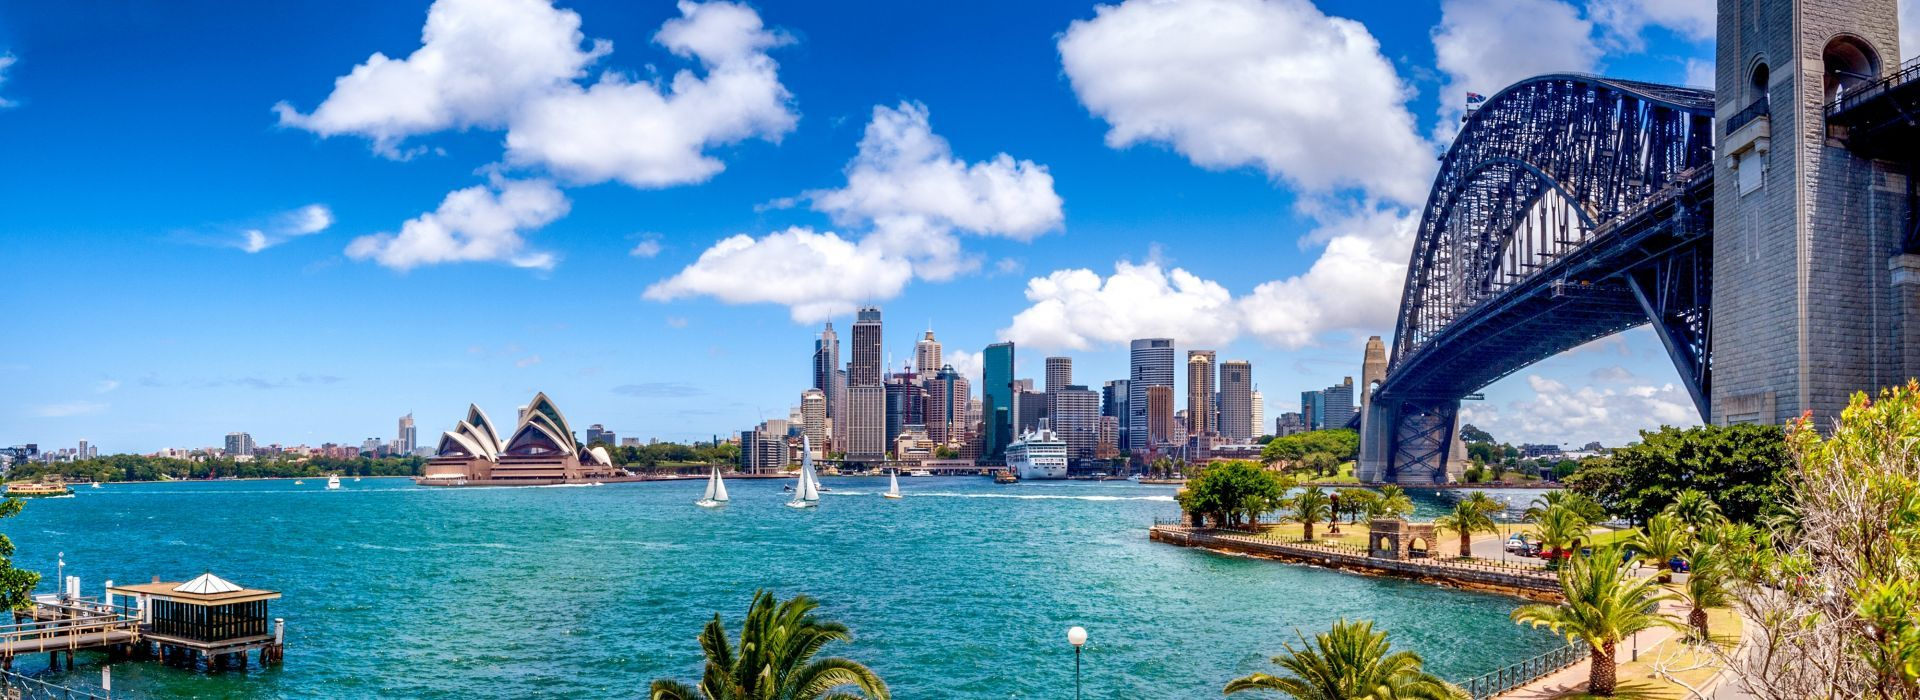 Sightseeing, attractions, culture and history Tours in Melbourne